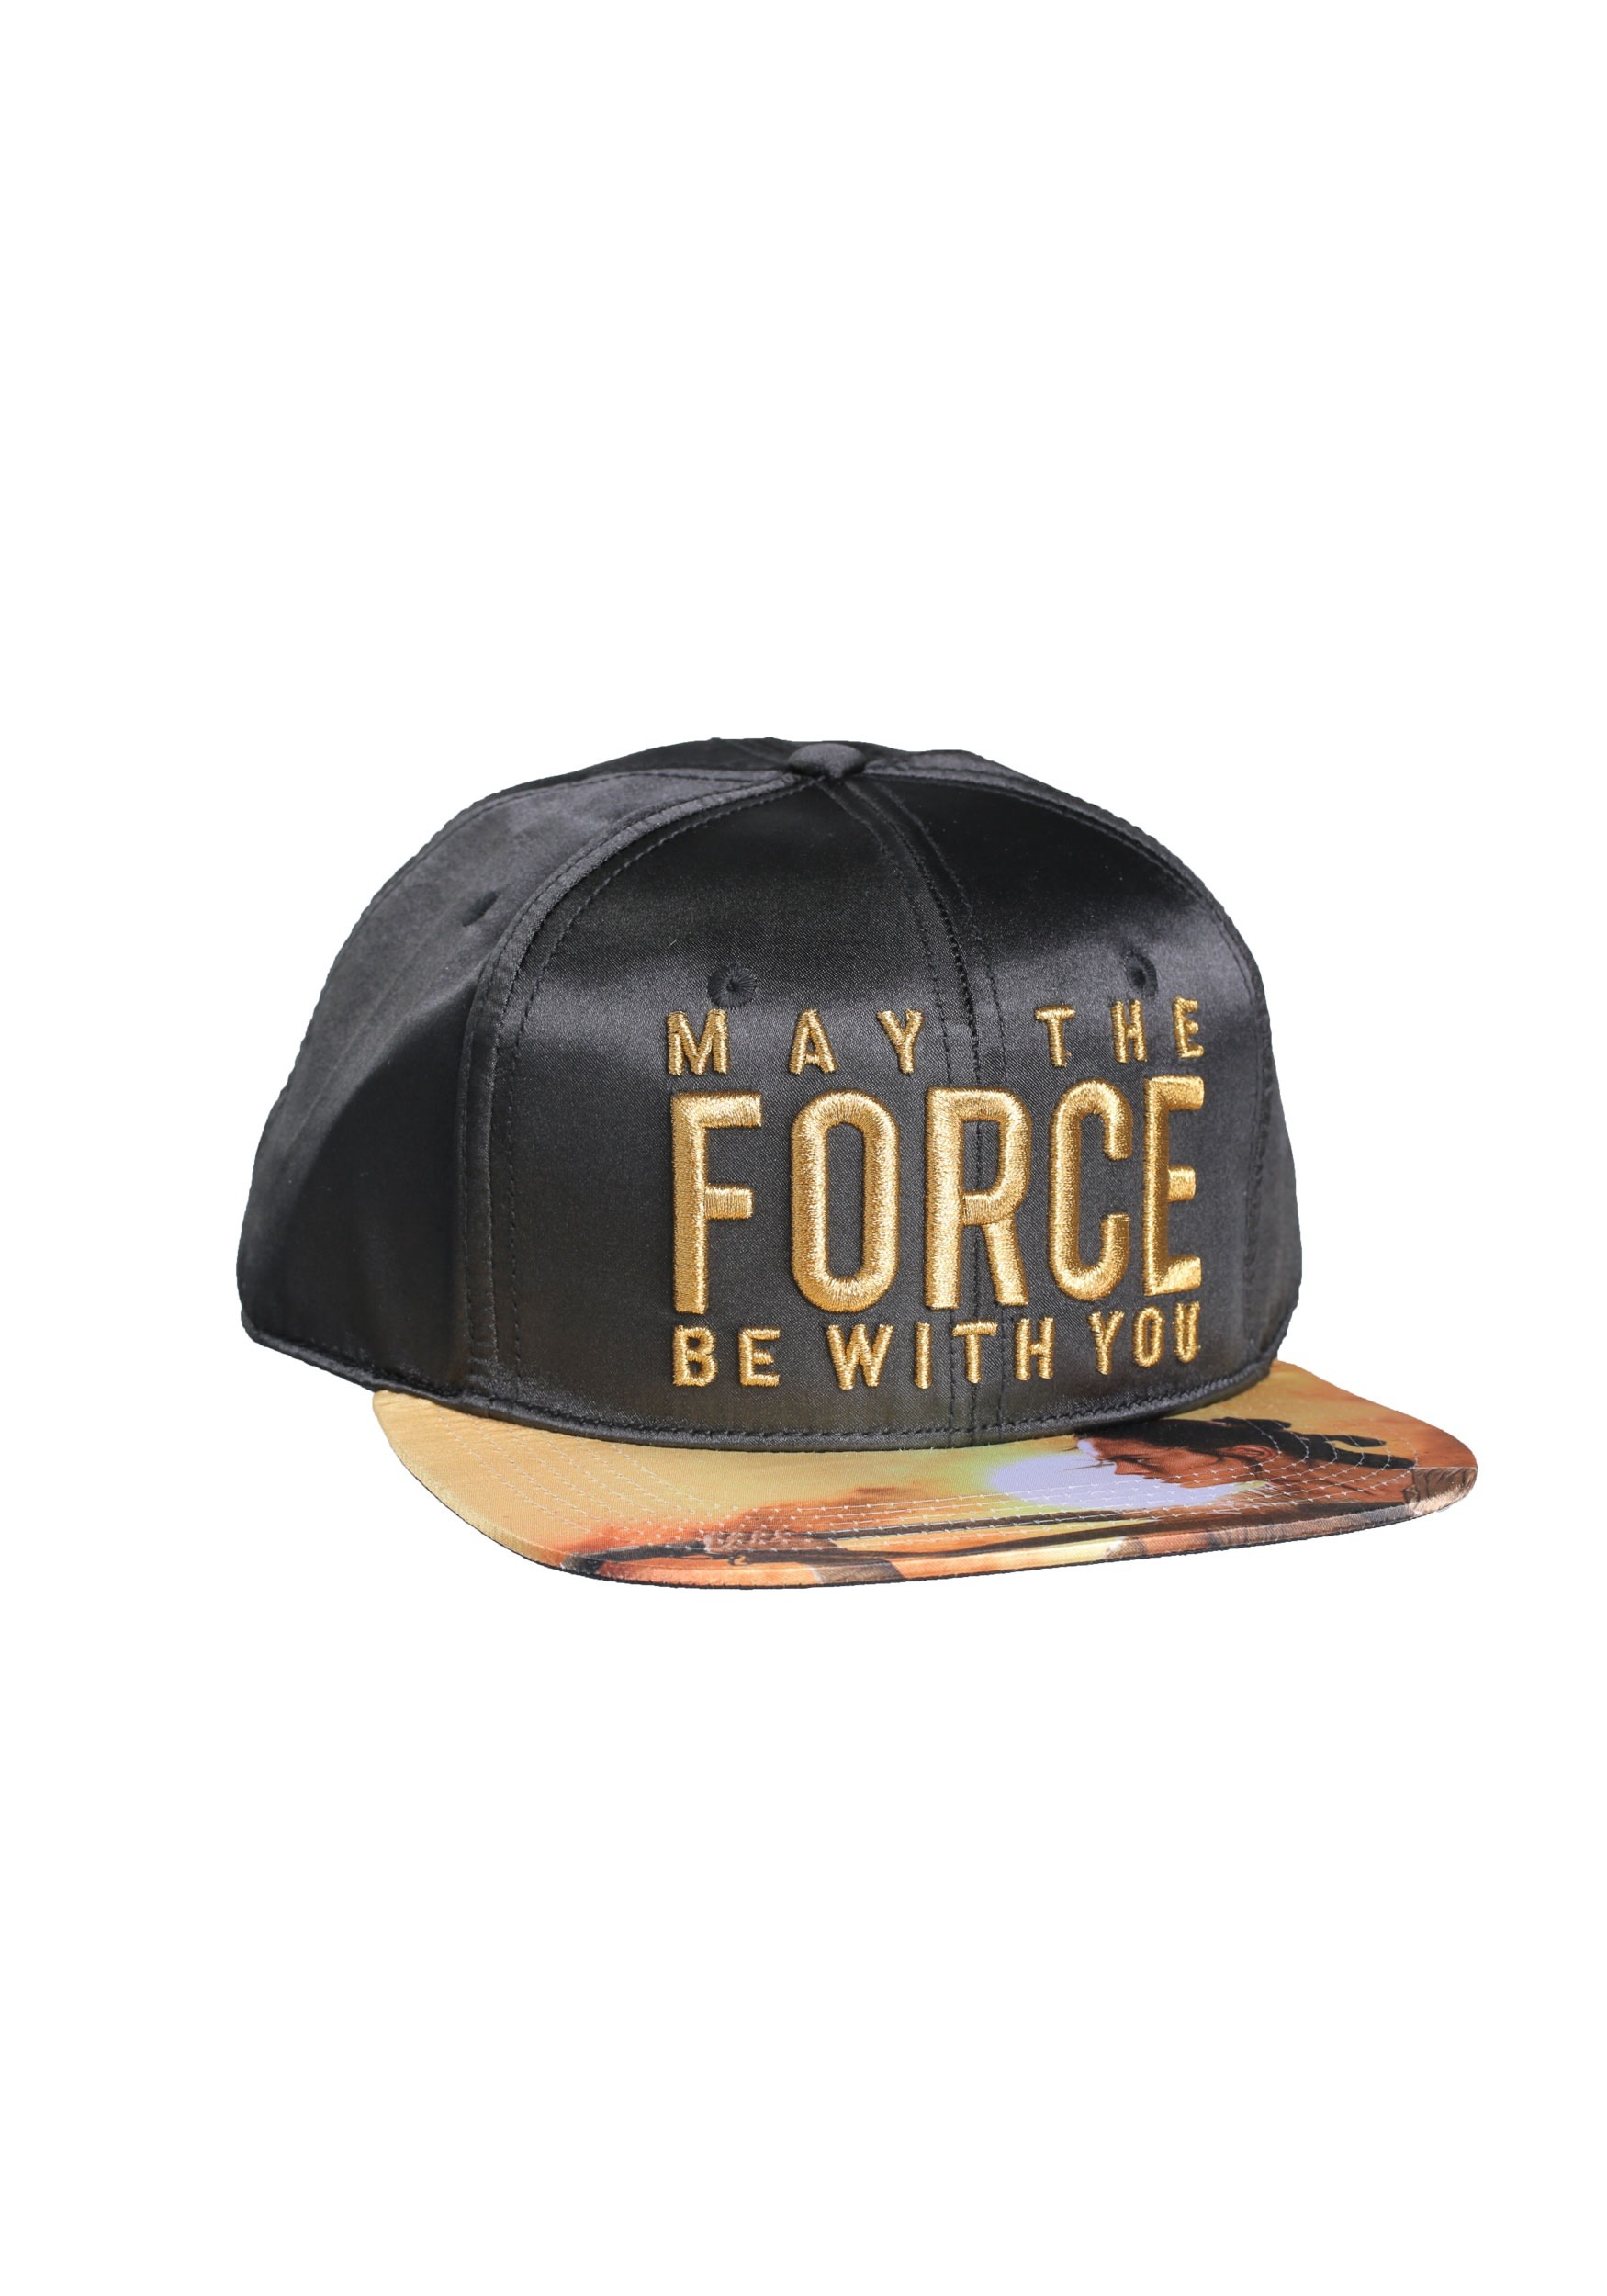 Star Wars Rey Force Satin Snapback Hat 63883cb2eba